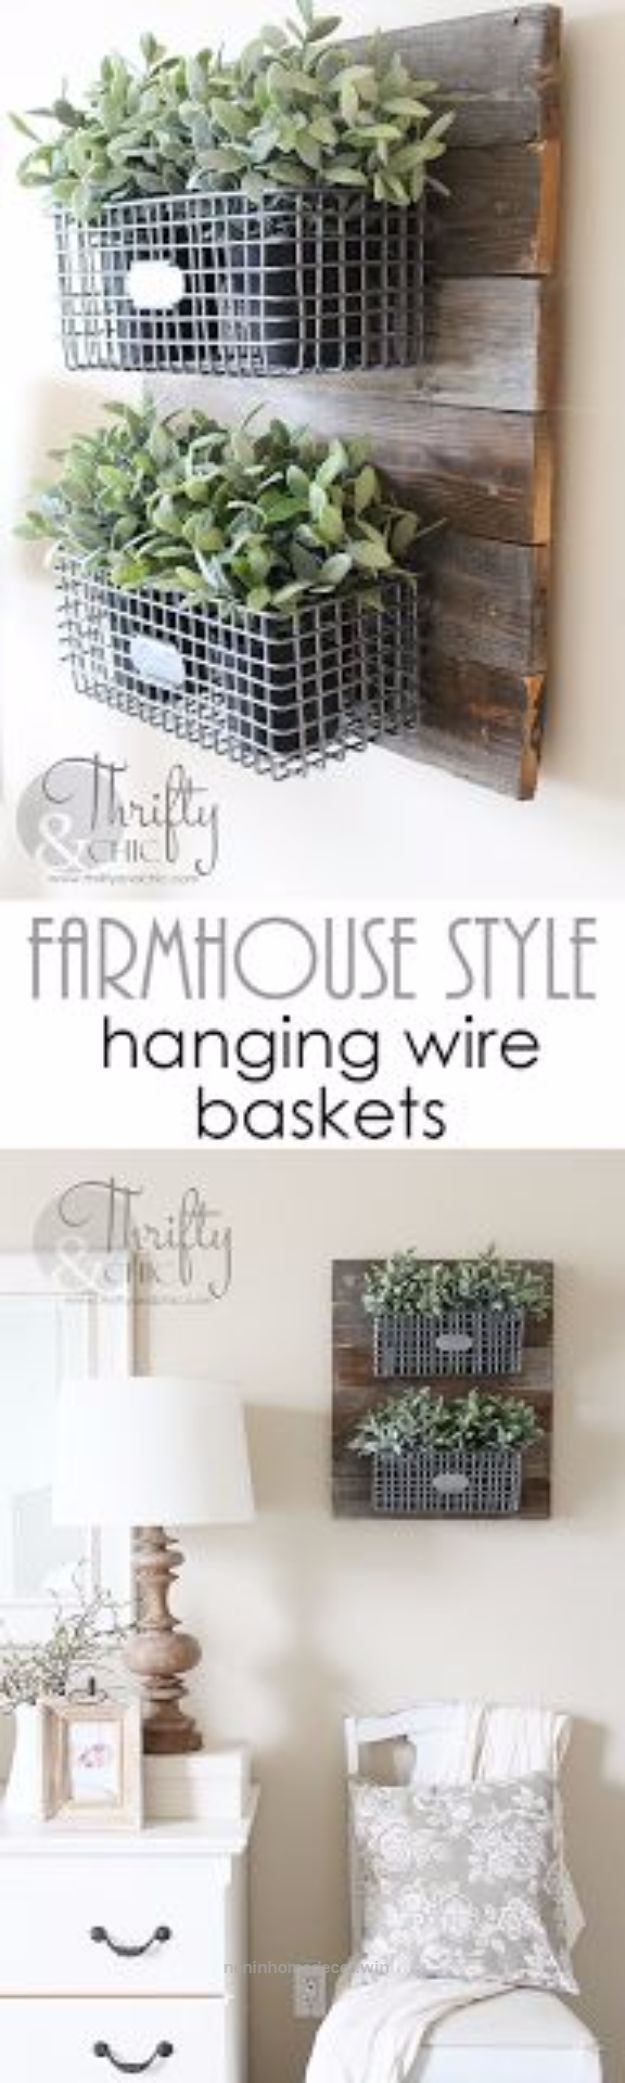 pictures to hang in master bathroom%0A Best Country Decor Ideas  Farmhouse Style Hanging Wire Baskets  Rustic  Farmhou